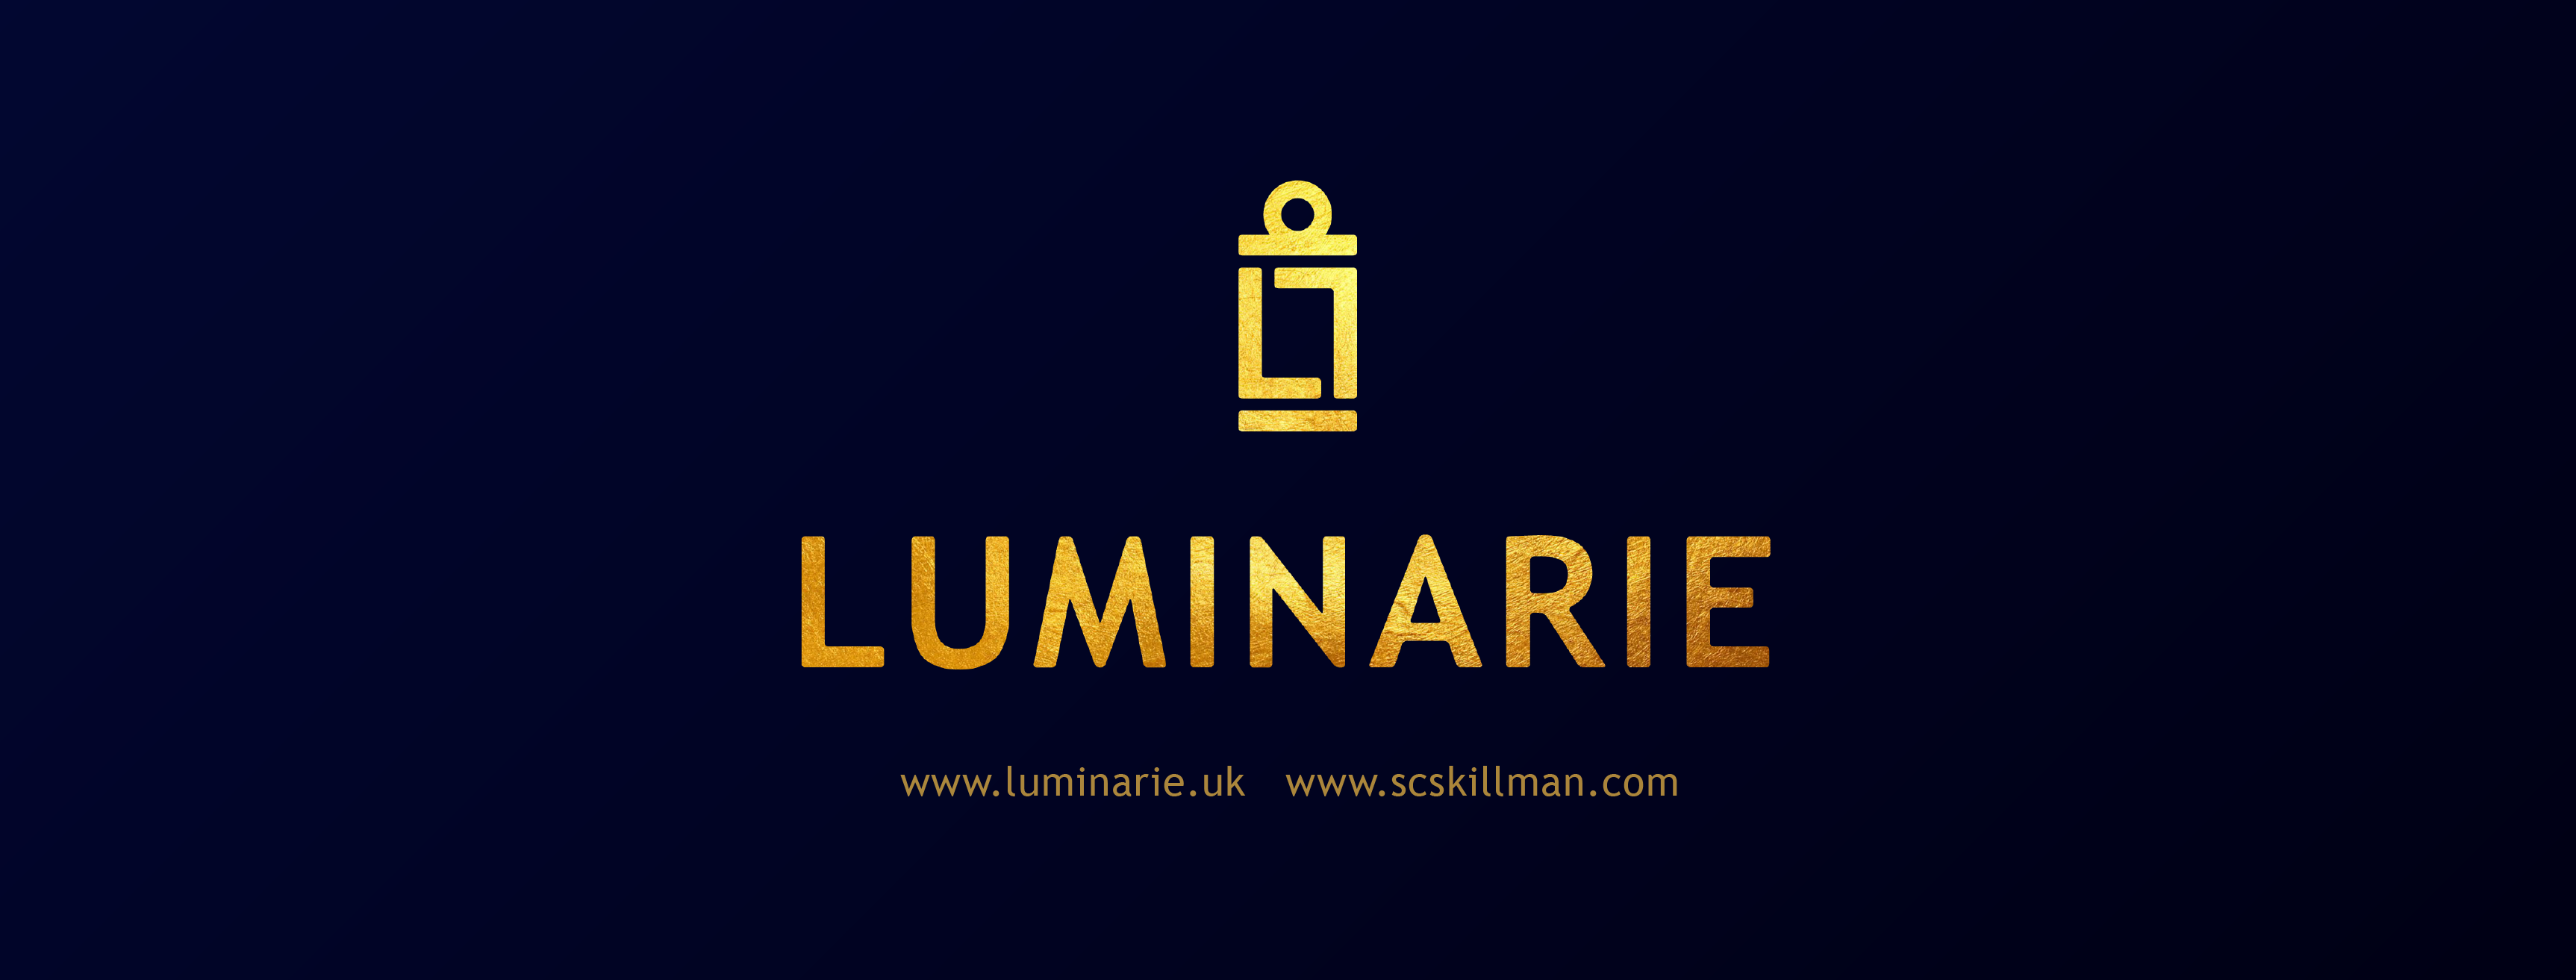 Logo and brand-name for Luminarie publishing company www.scskillman.com; www.luminarie.uk